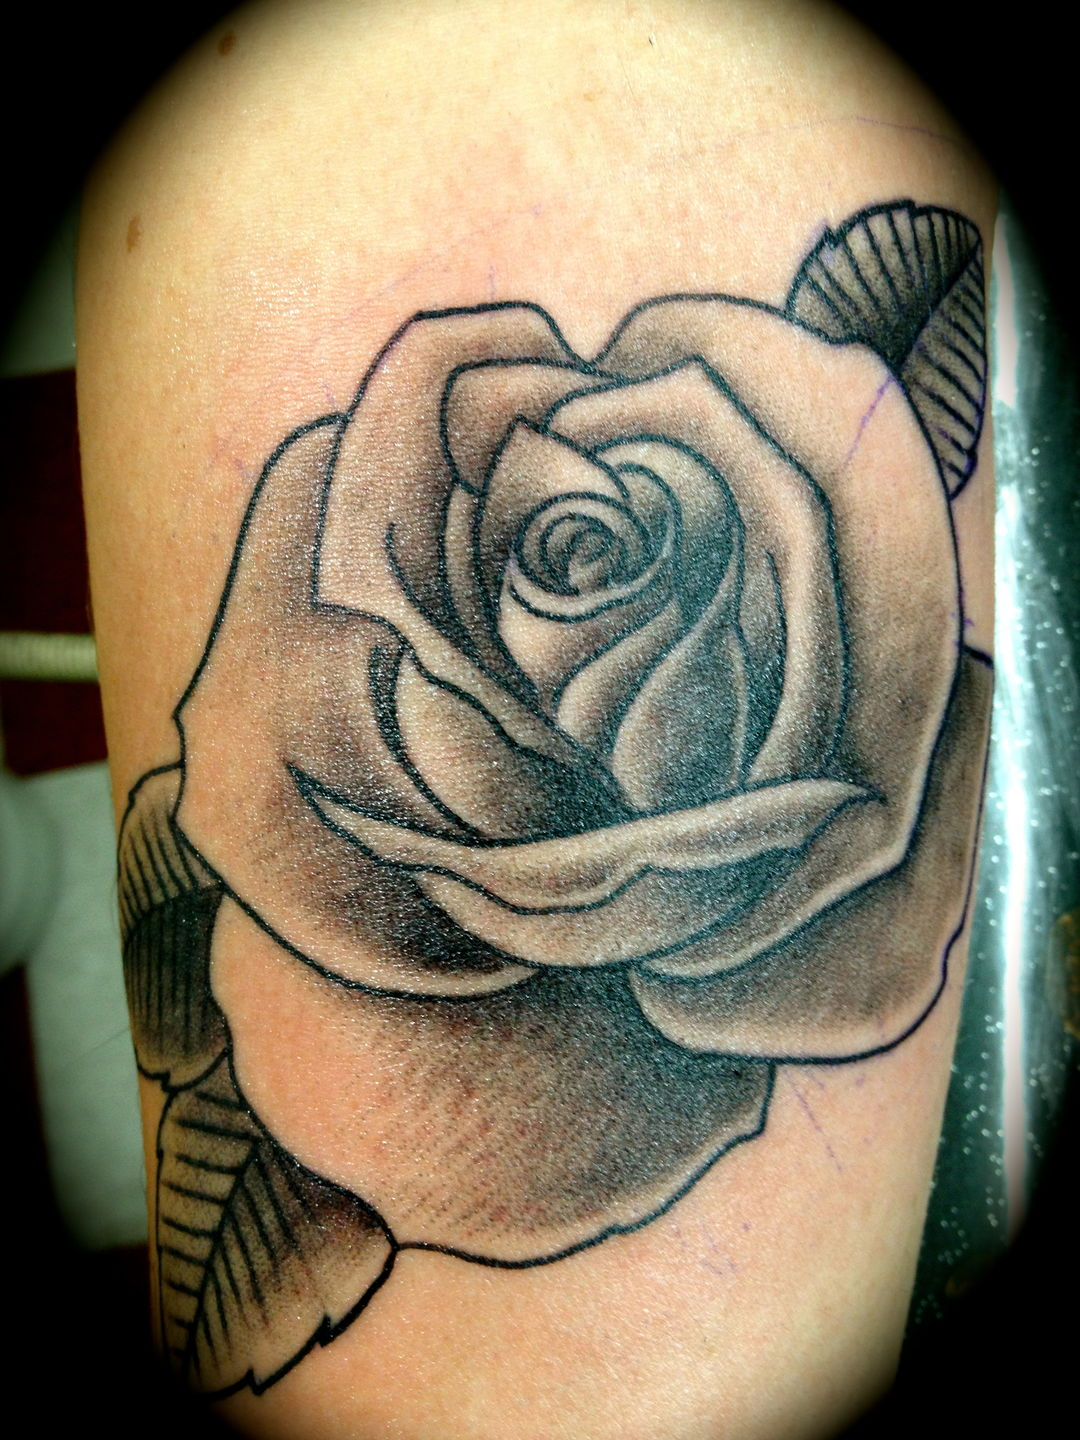 Readyfreddiearroyo bg rose rose black and grey rose tattoo for Black and gray rose tattoos